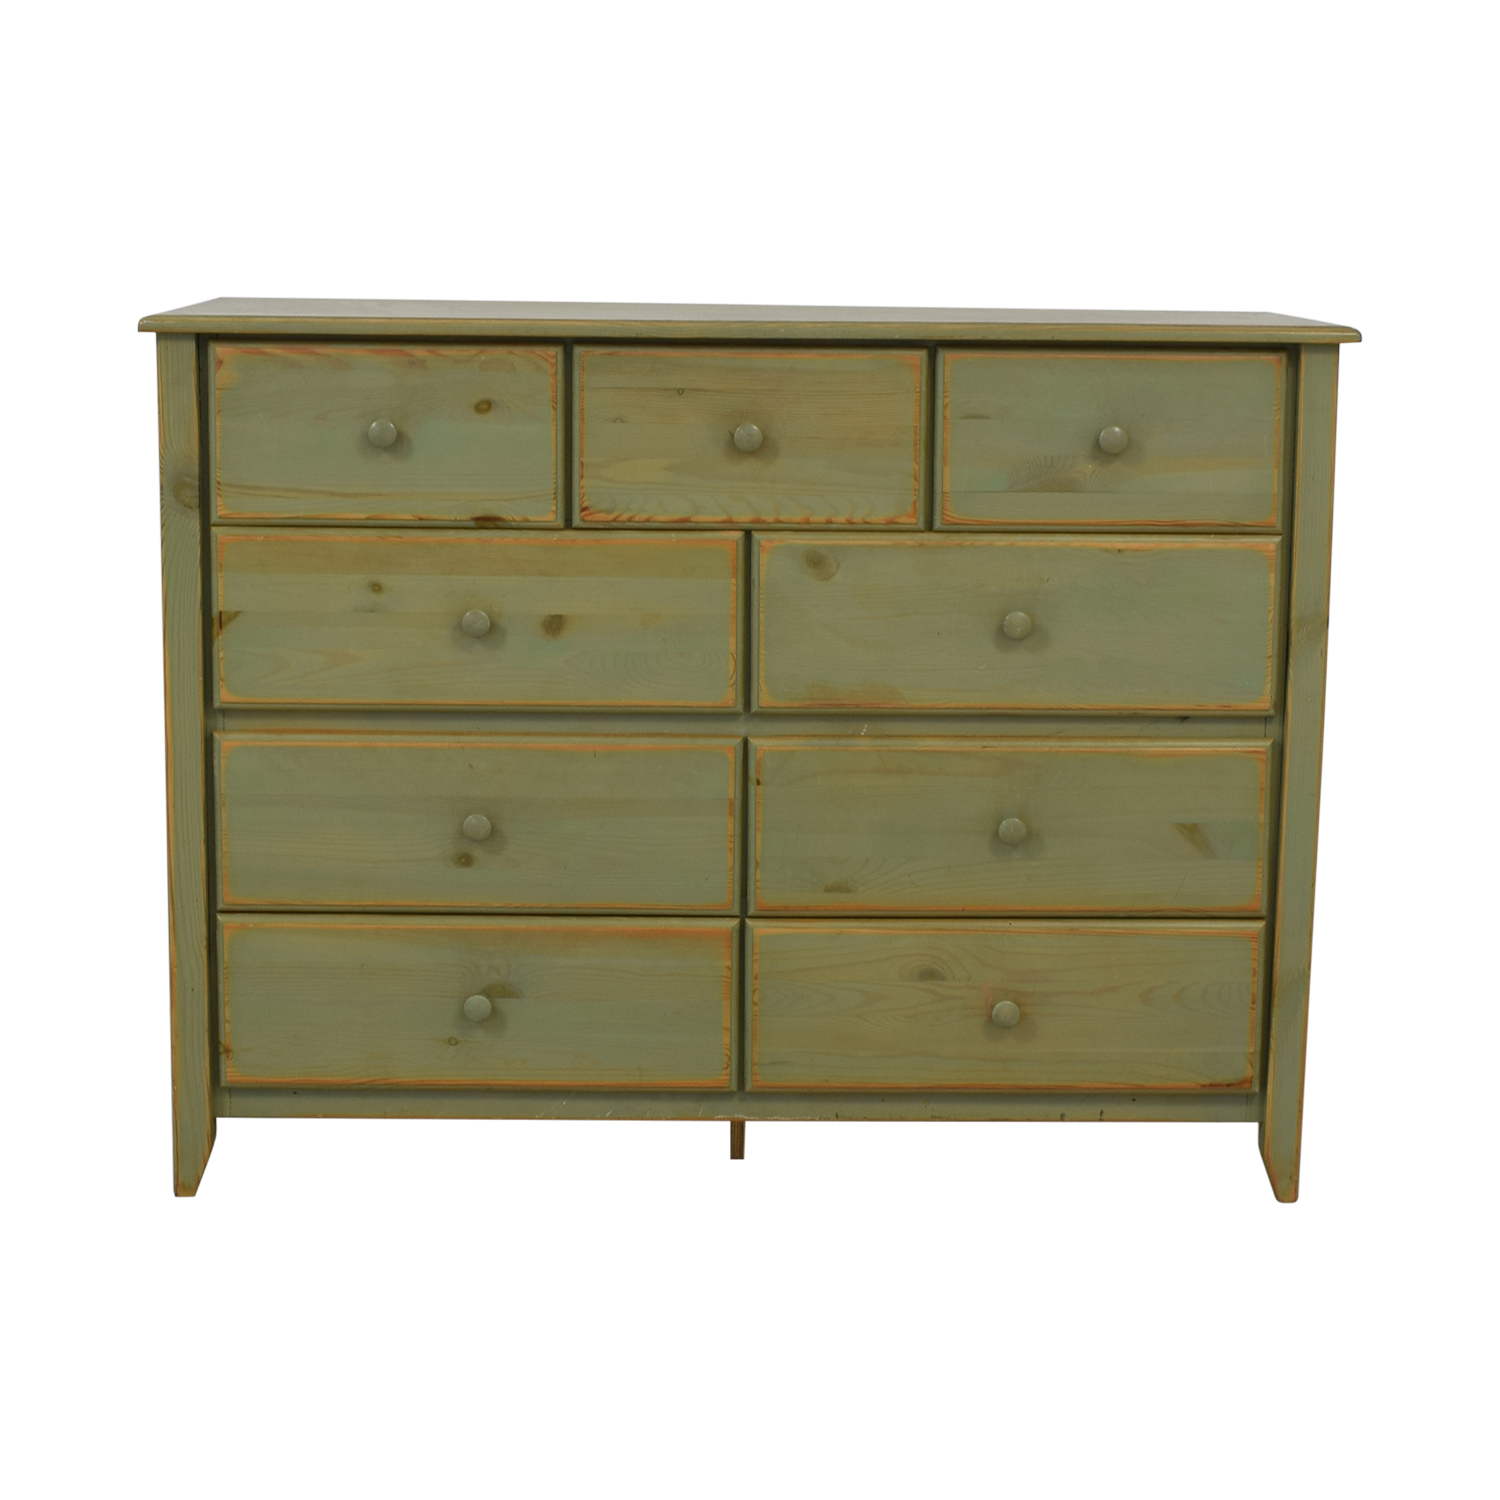 Gothic Cabinet Craft Gothic Cabinet Craft Green Distressed Dresser discount